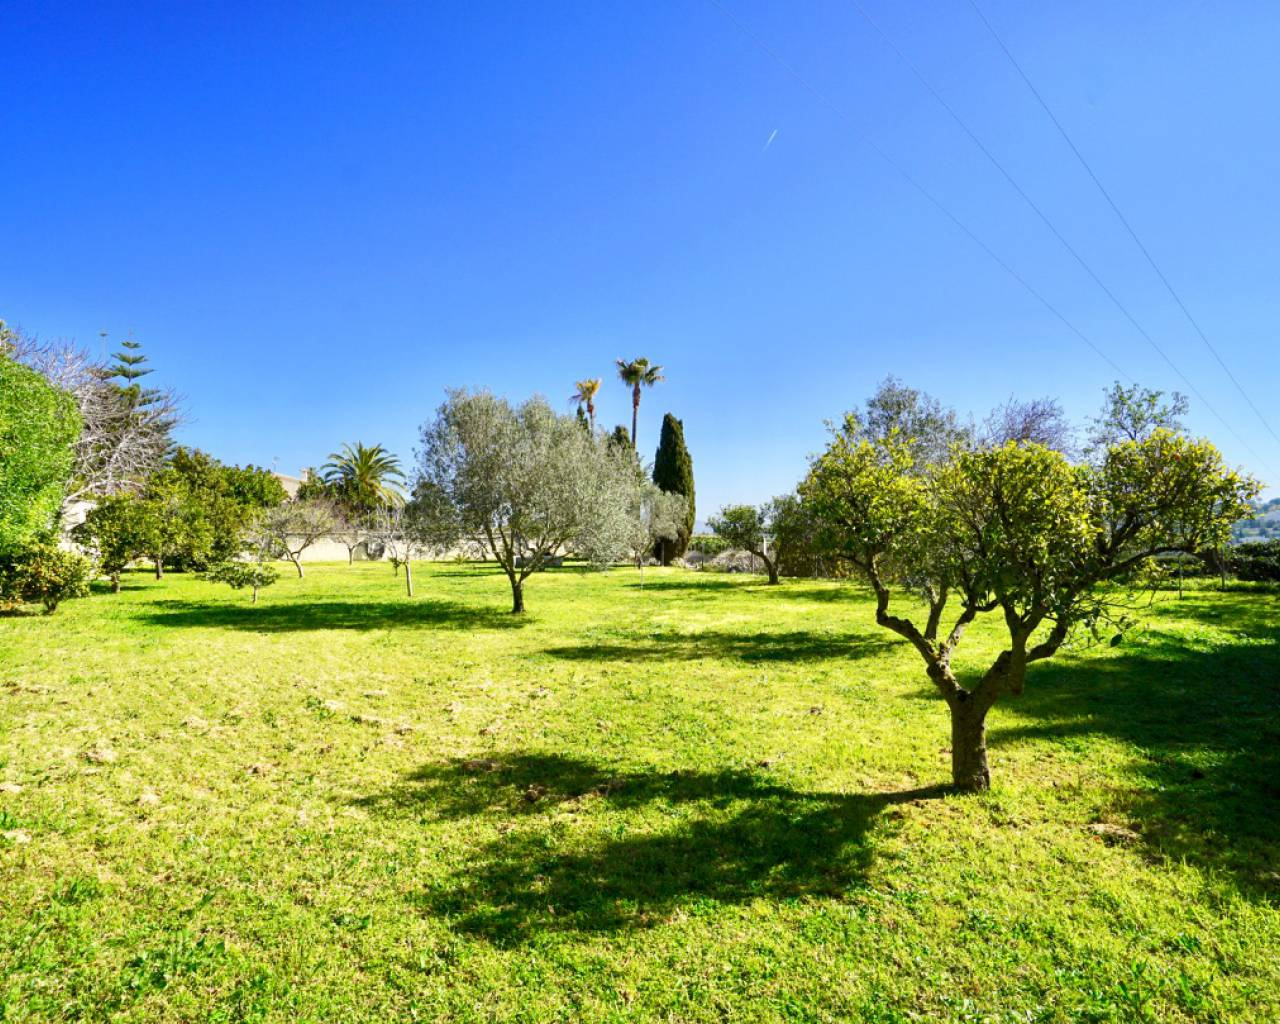 Sale - Country House / Finca - Teulada - Benimarco